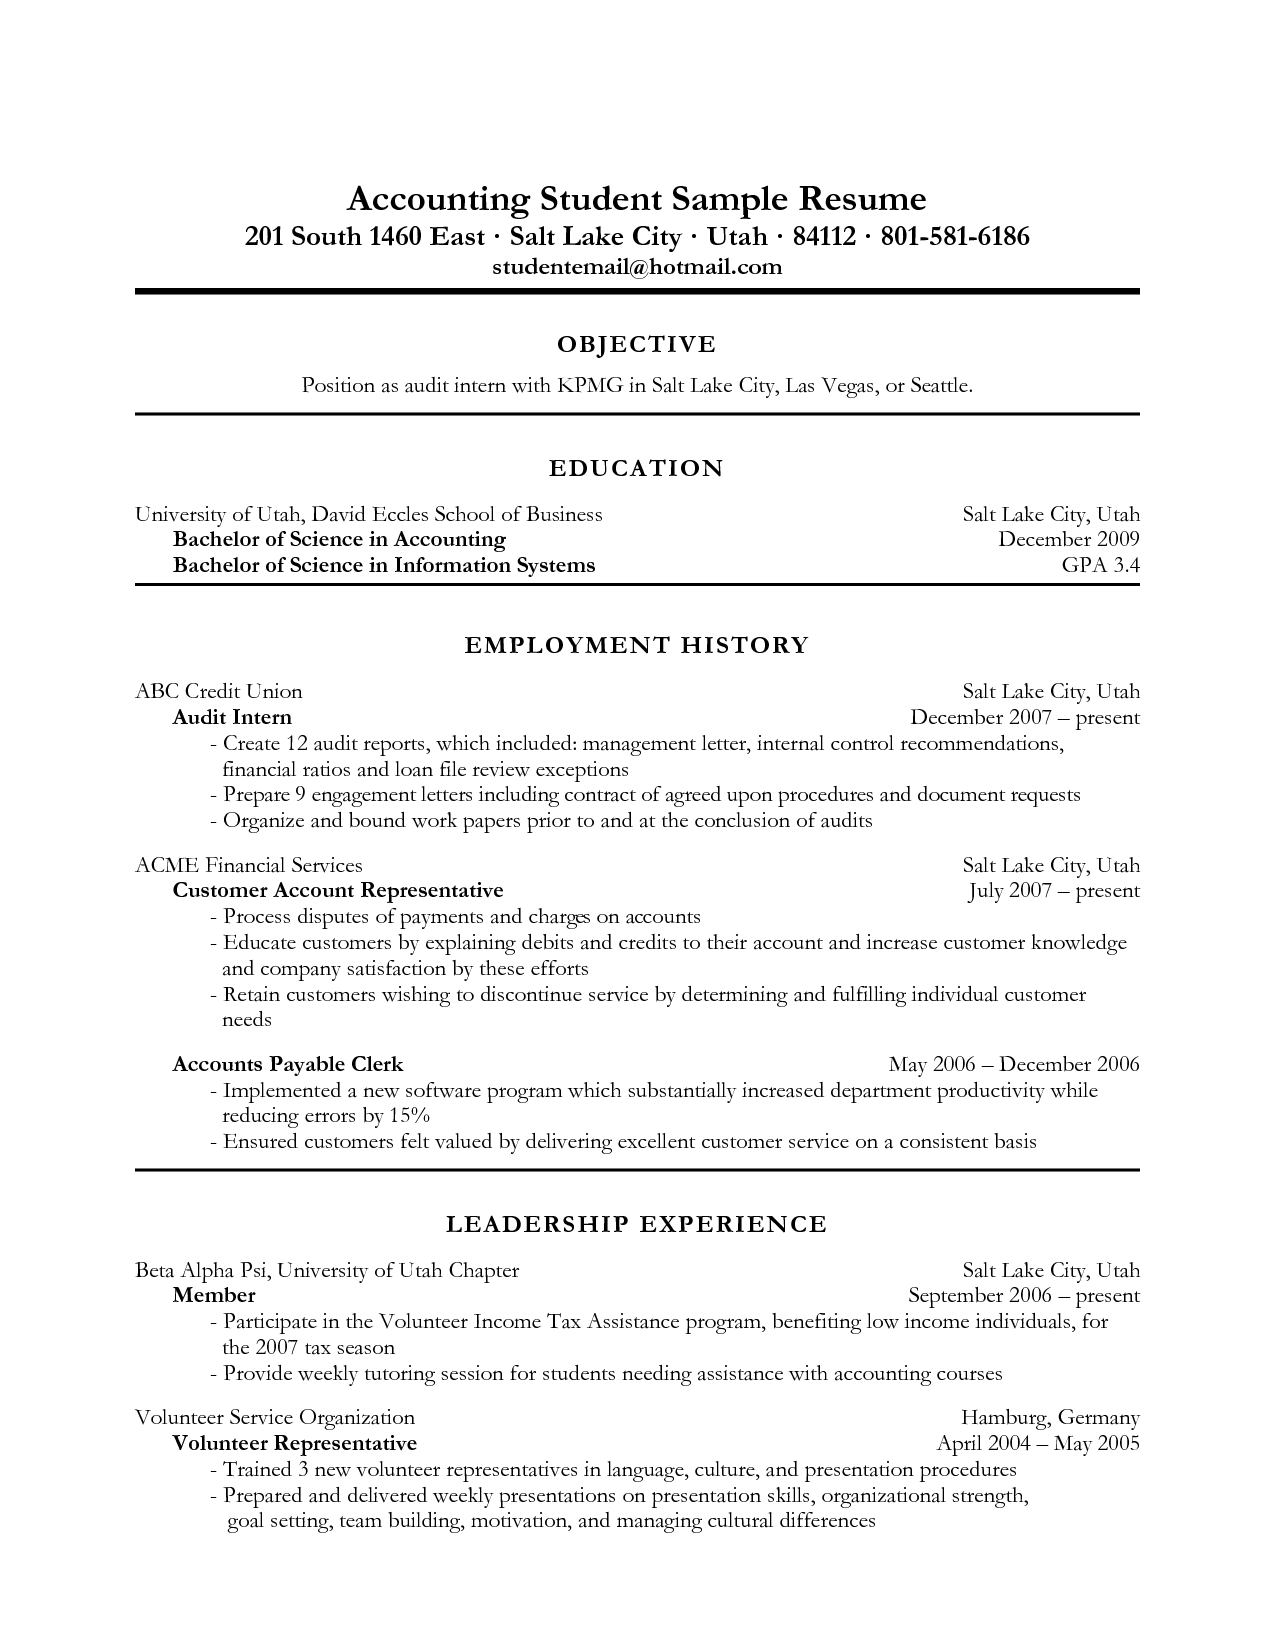 resume objective examples in accounting